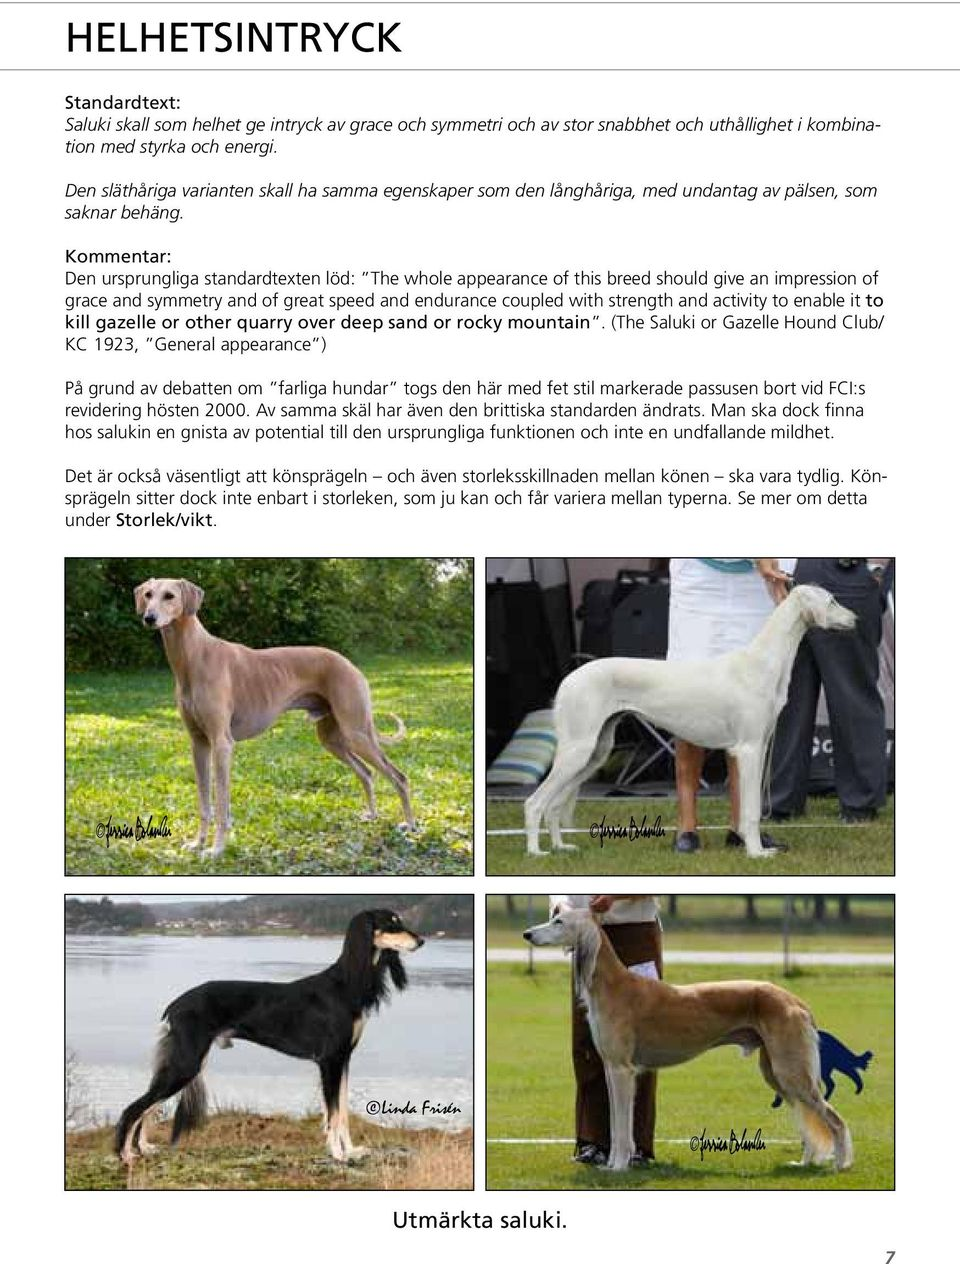 Den ursprungliga standardtexten löd: The whole appearance of this breed should give an impression of grace and symmetry and of great speed and endurance coupled with strength and activity to enable